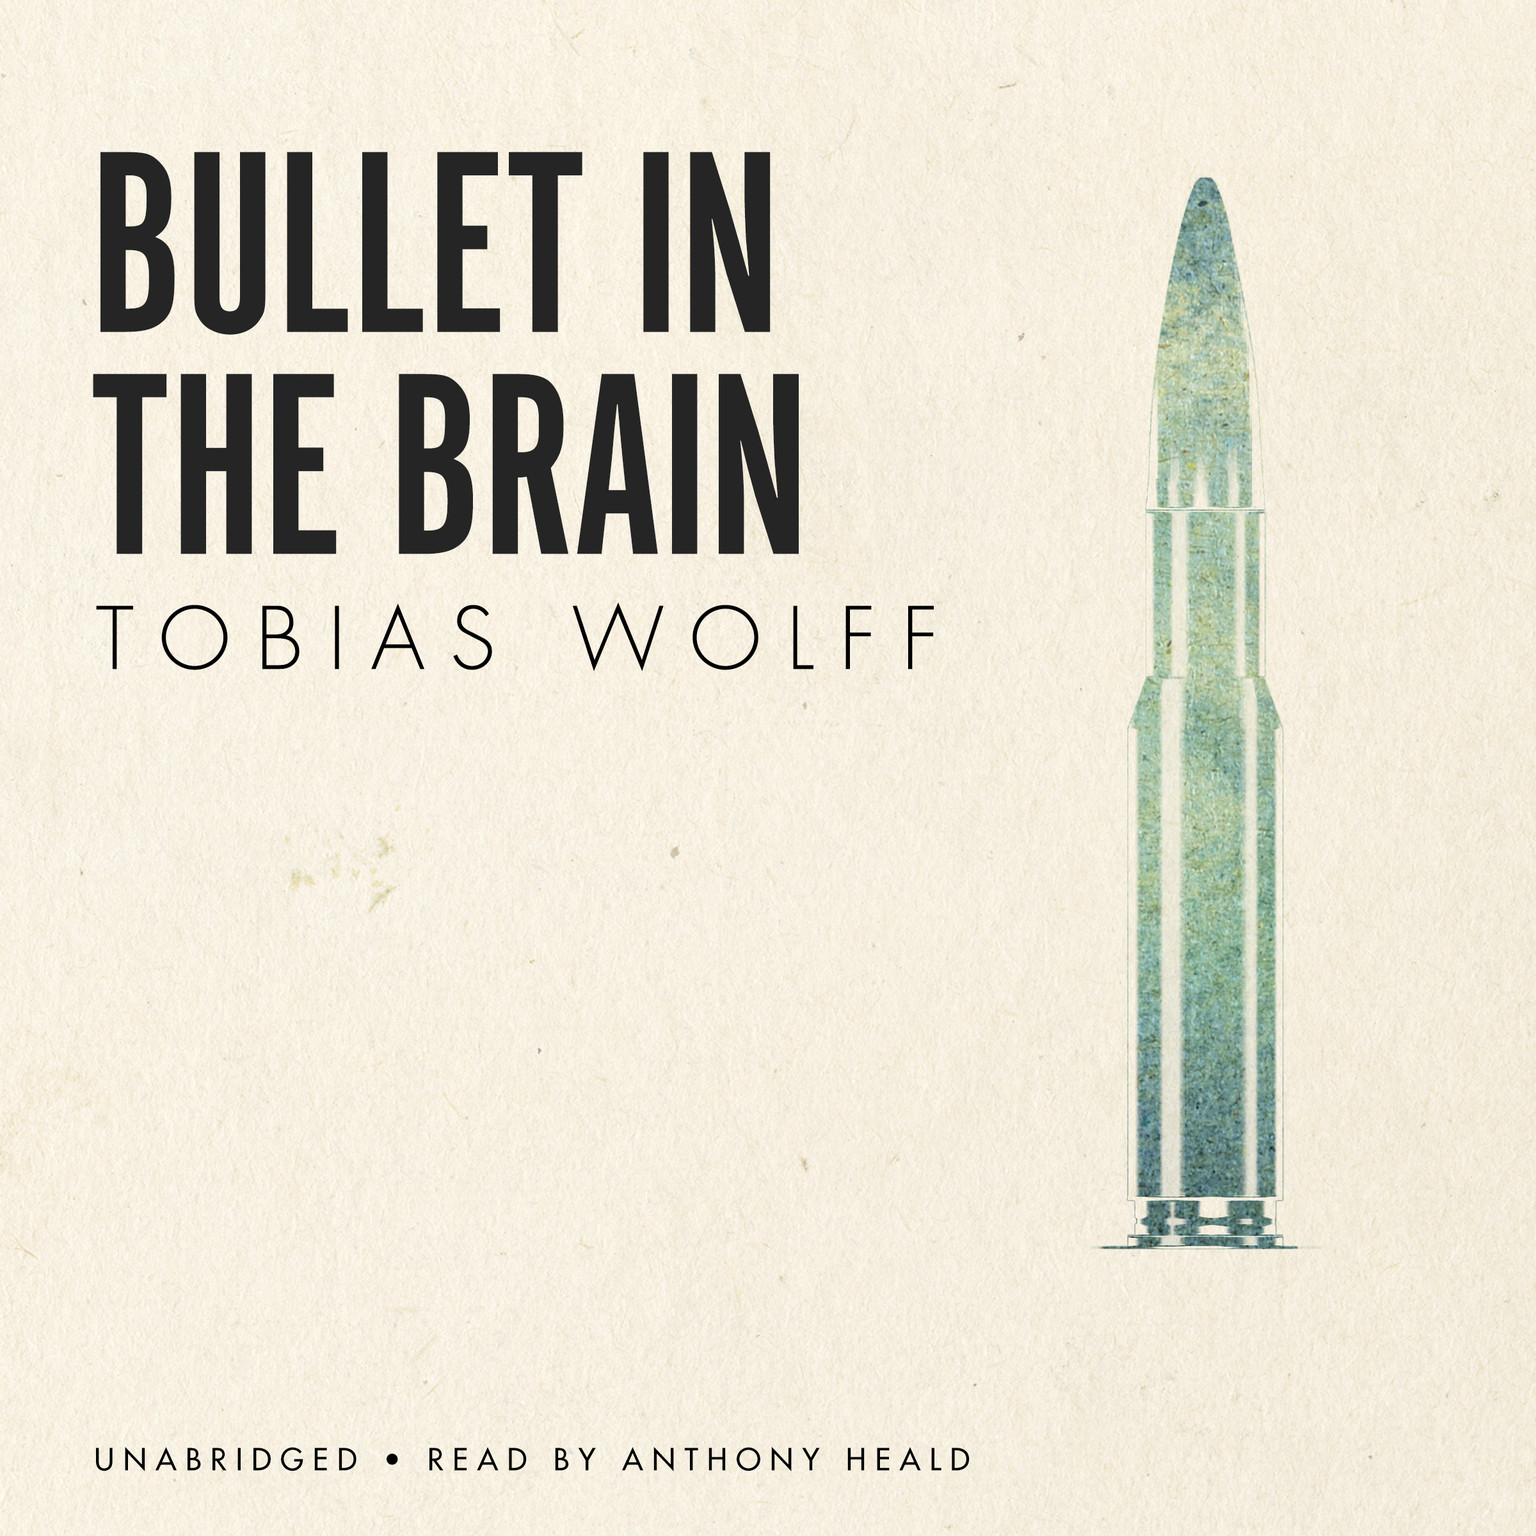 essay on bullet in the brain